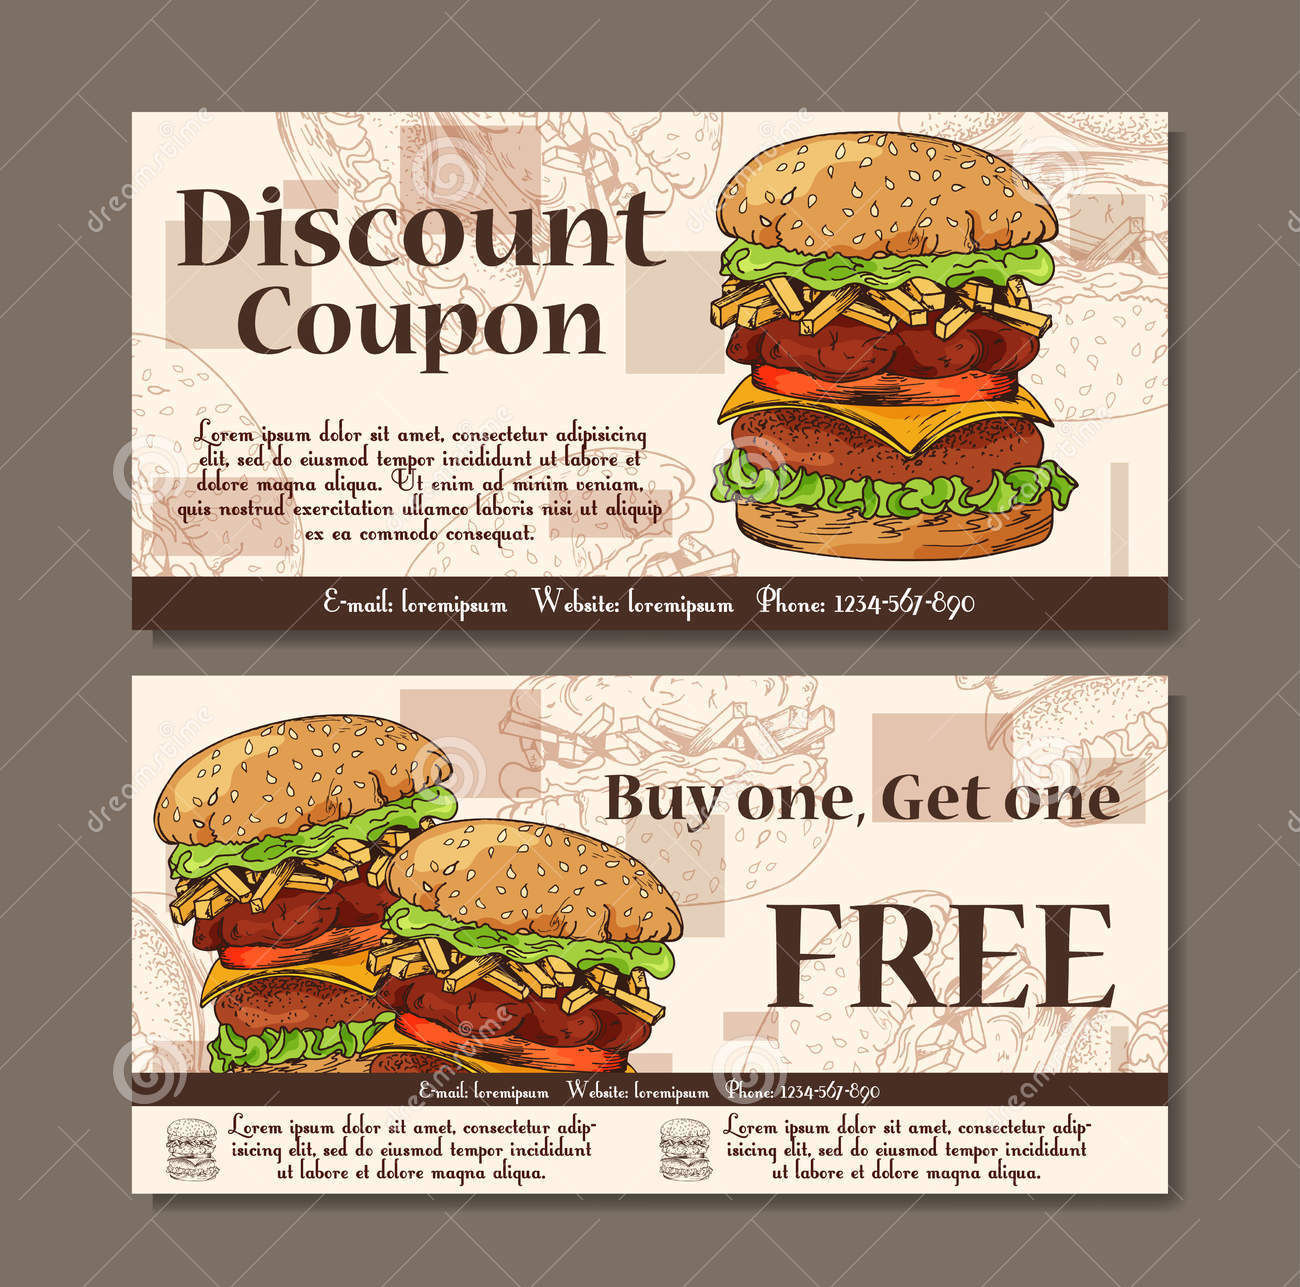 Restaurant Coupons & Discounts Whether you want an affordable night off from cooking or simply love discovering restaurant deals, RetailMeNot is your go-to spot for savings. Here we've compiled our best offers for Olive Garden, Chili's, Pizza Hut and more.